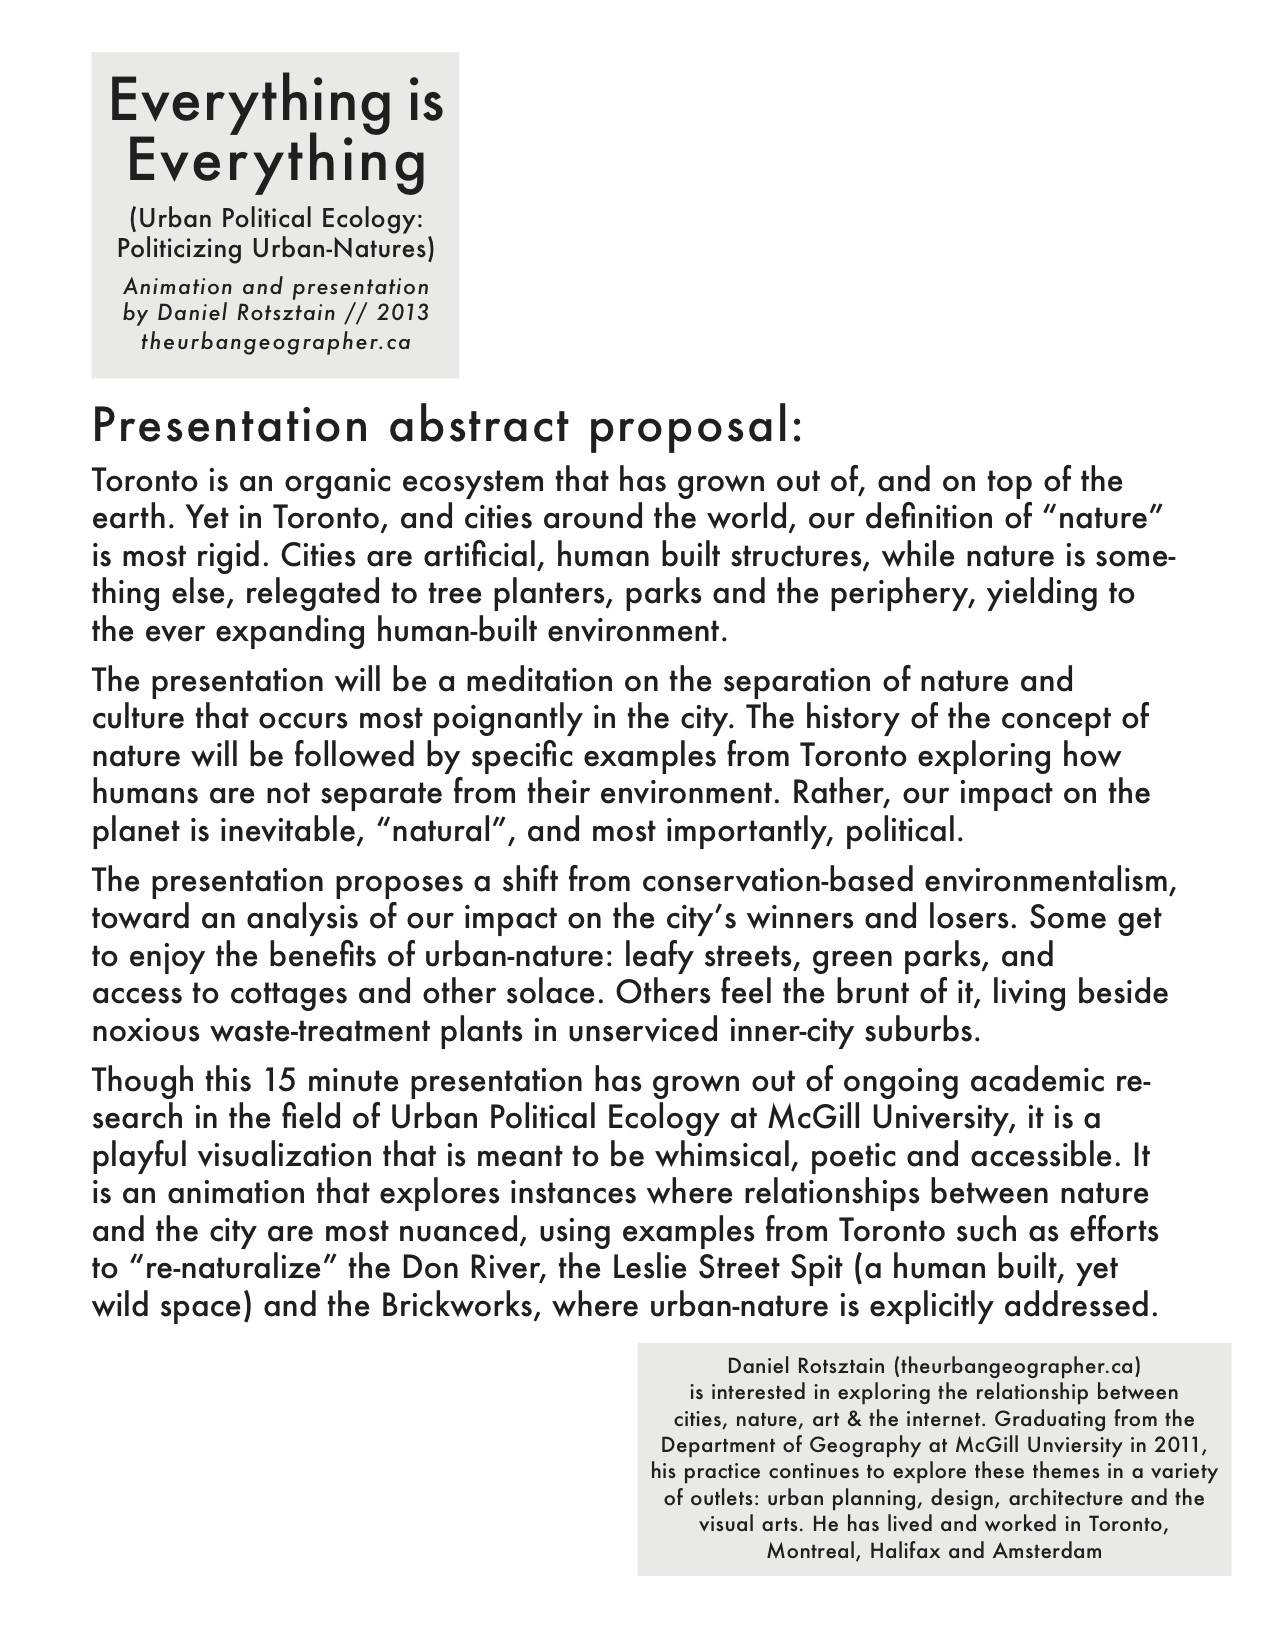 abstract for conference presentation